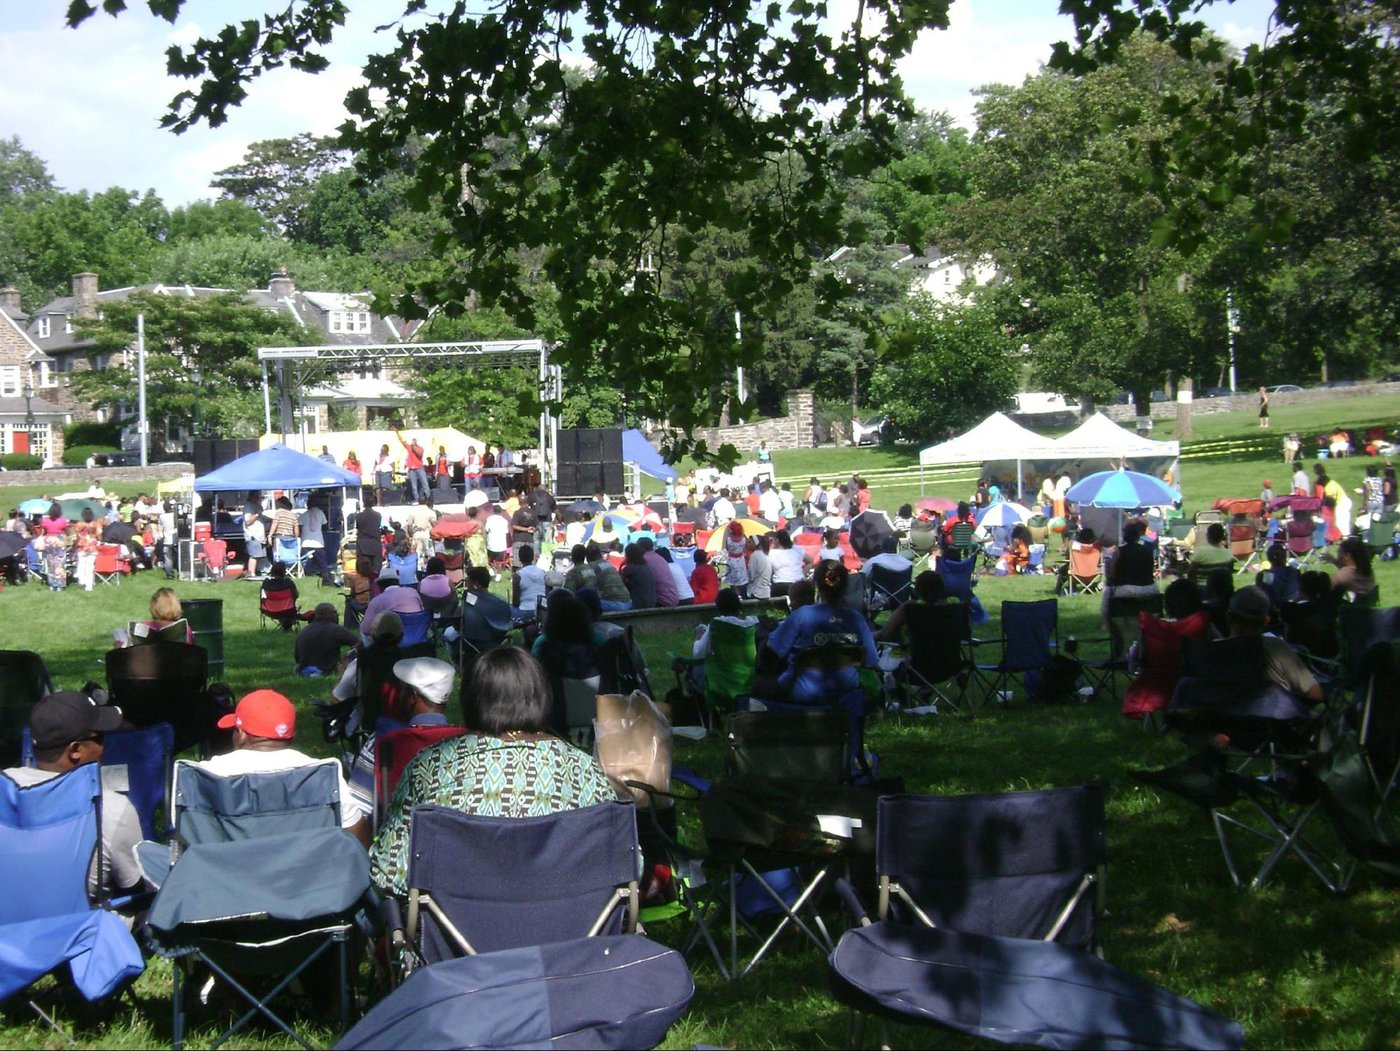 Gosepfest on the lawn of the New Covenant Church of Philadelphia